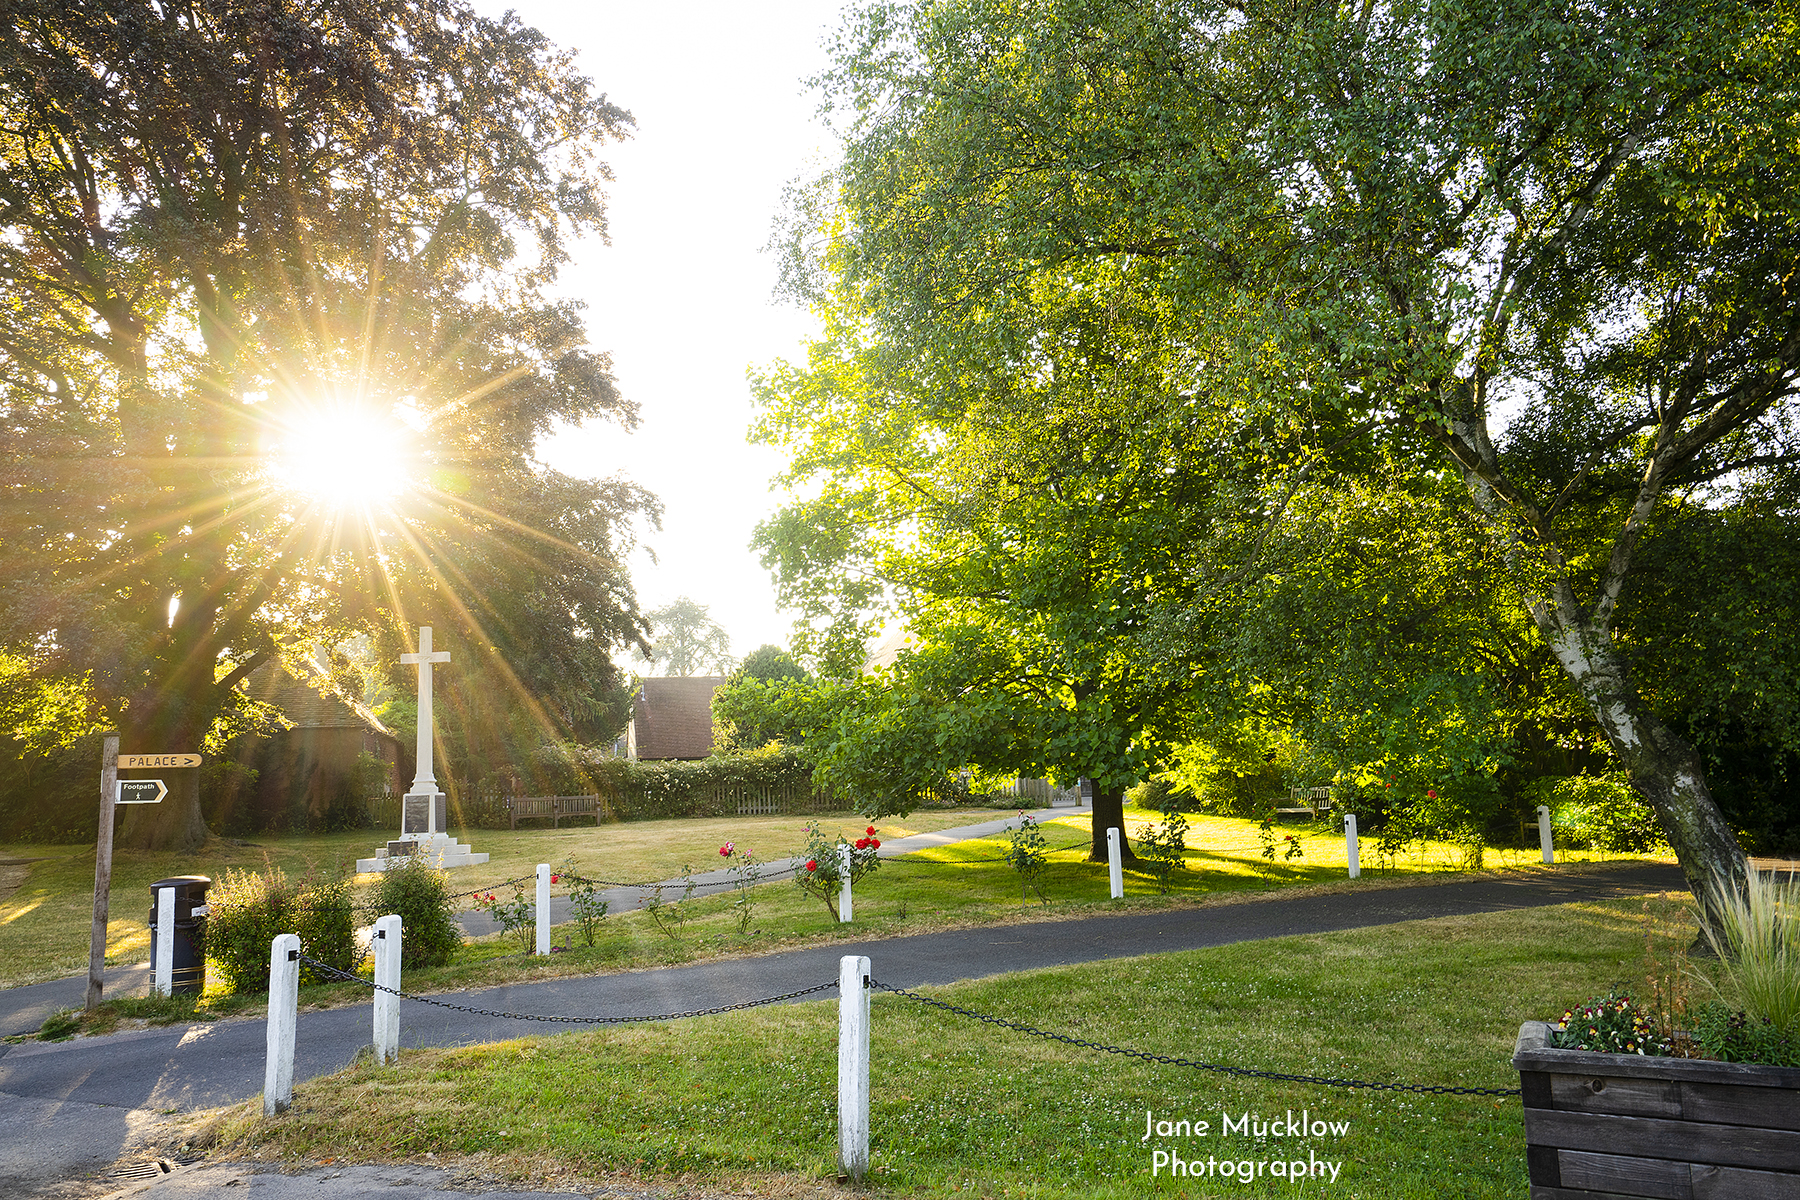 Photo of a summer sunrise at the church green and war memorial, by Jane Mucklow